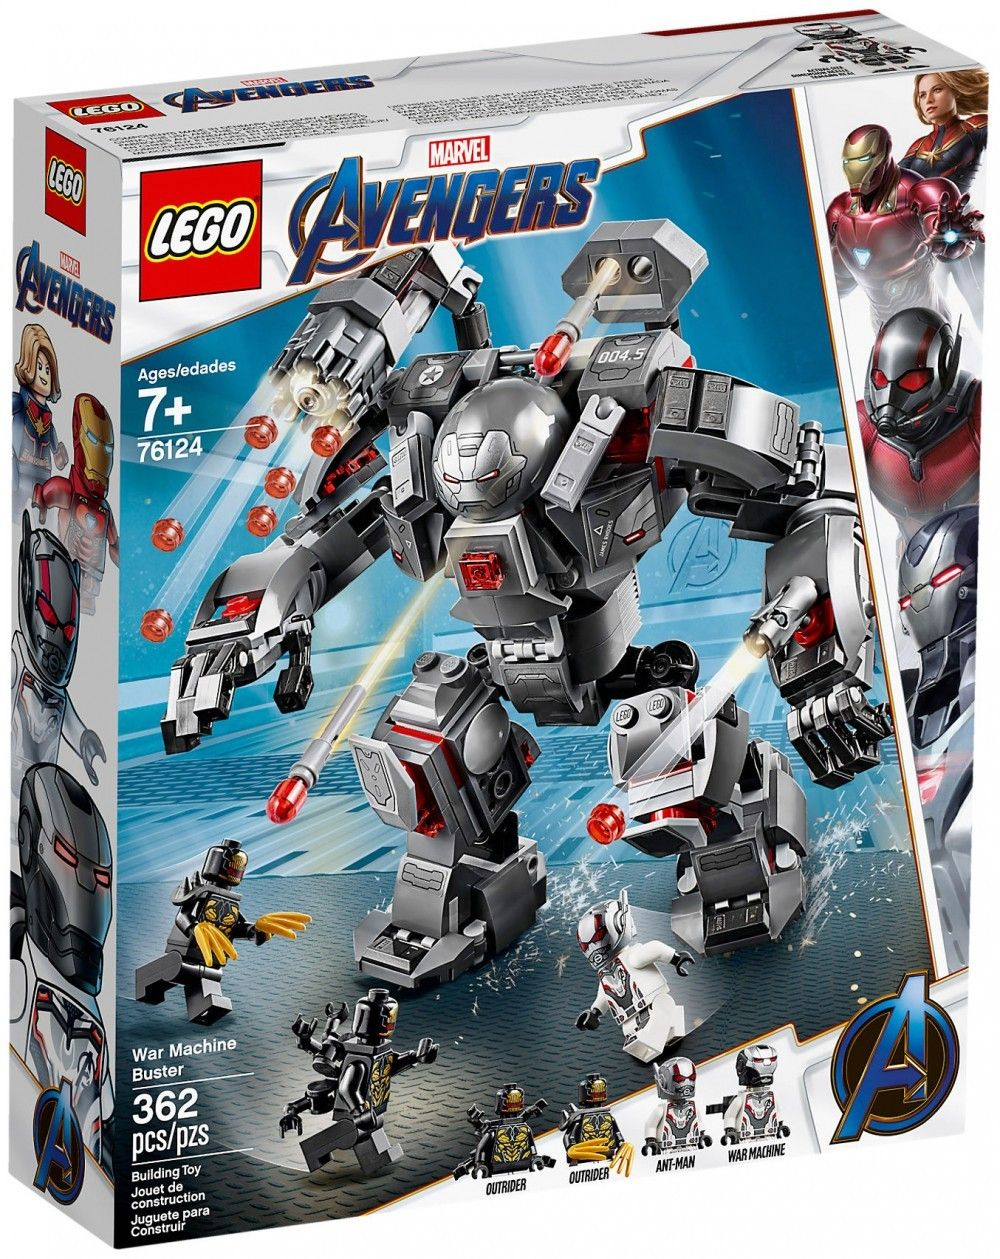 Nouveau LEGO Marvel 76124 L'armure de War Machine